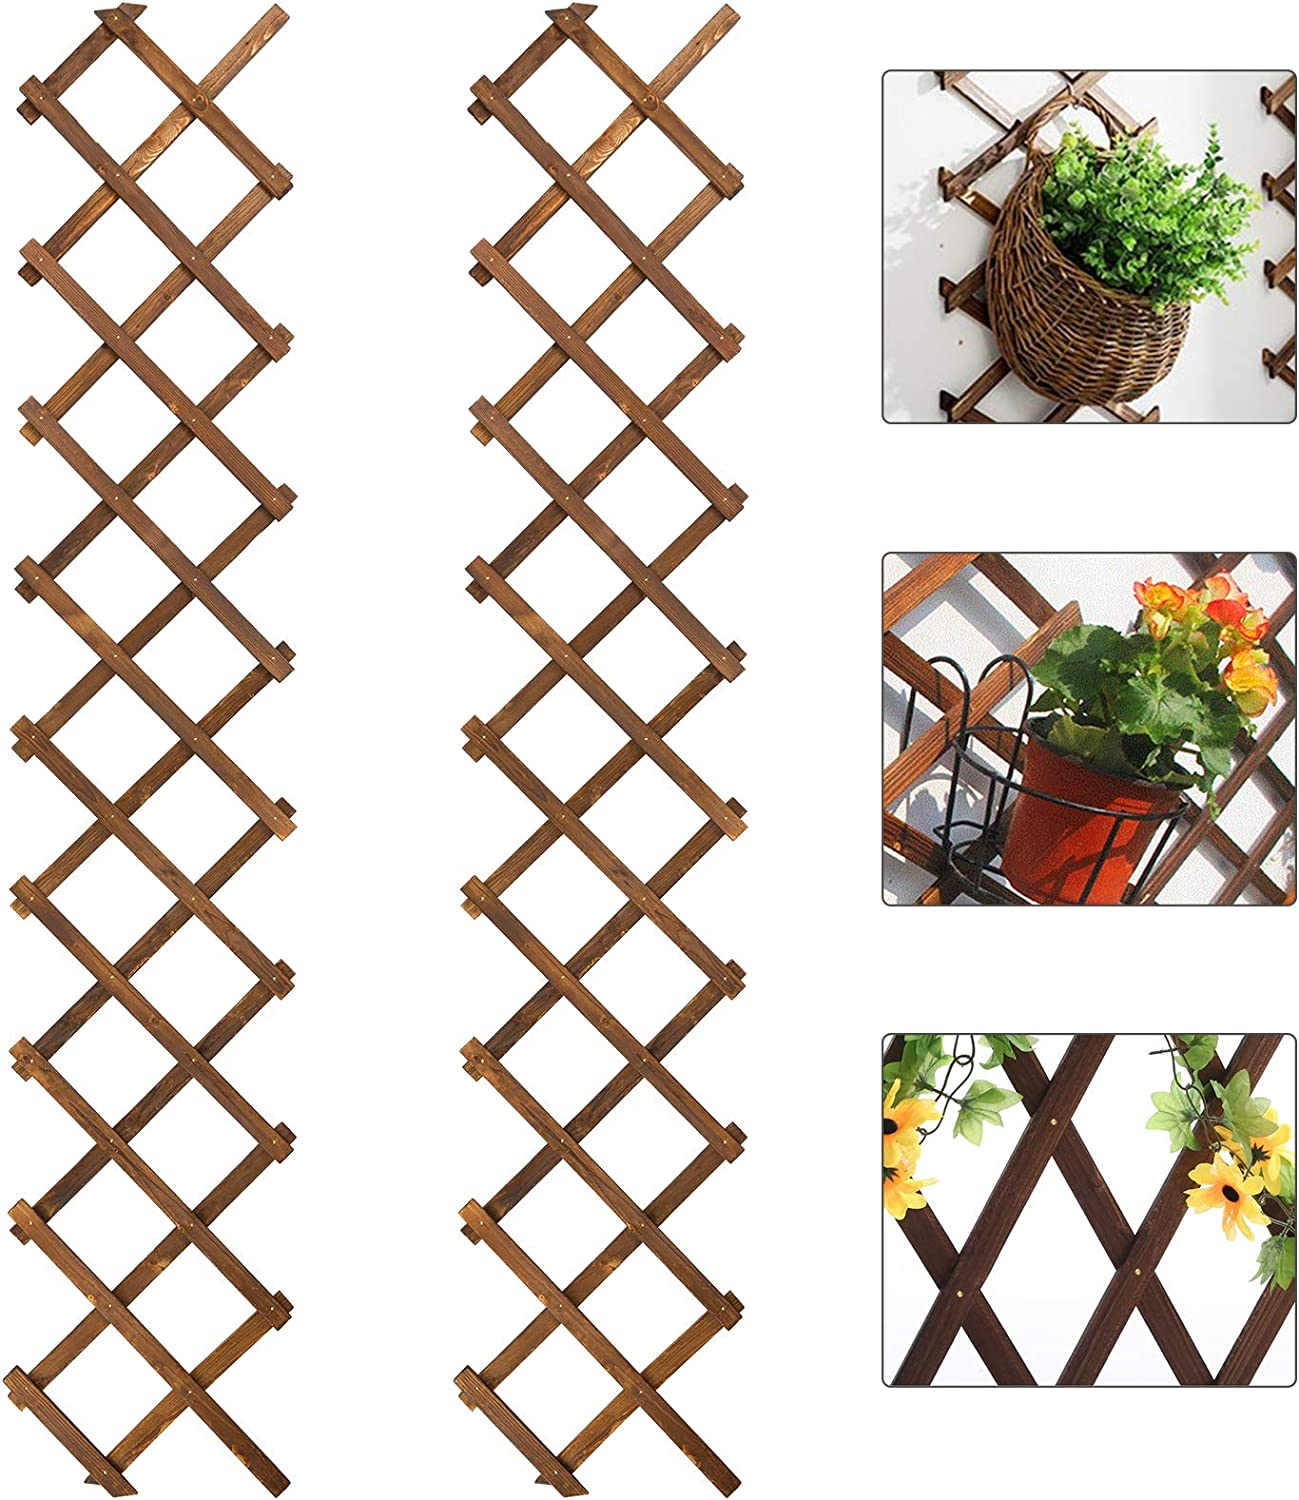 Max 82% OFF Pack of 2 Wooden Lattice Wall Thick Pl Trust Extra Planter- Expandable